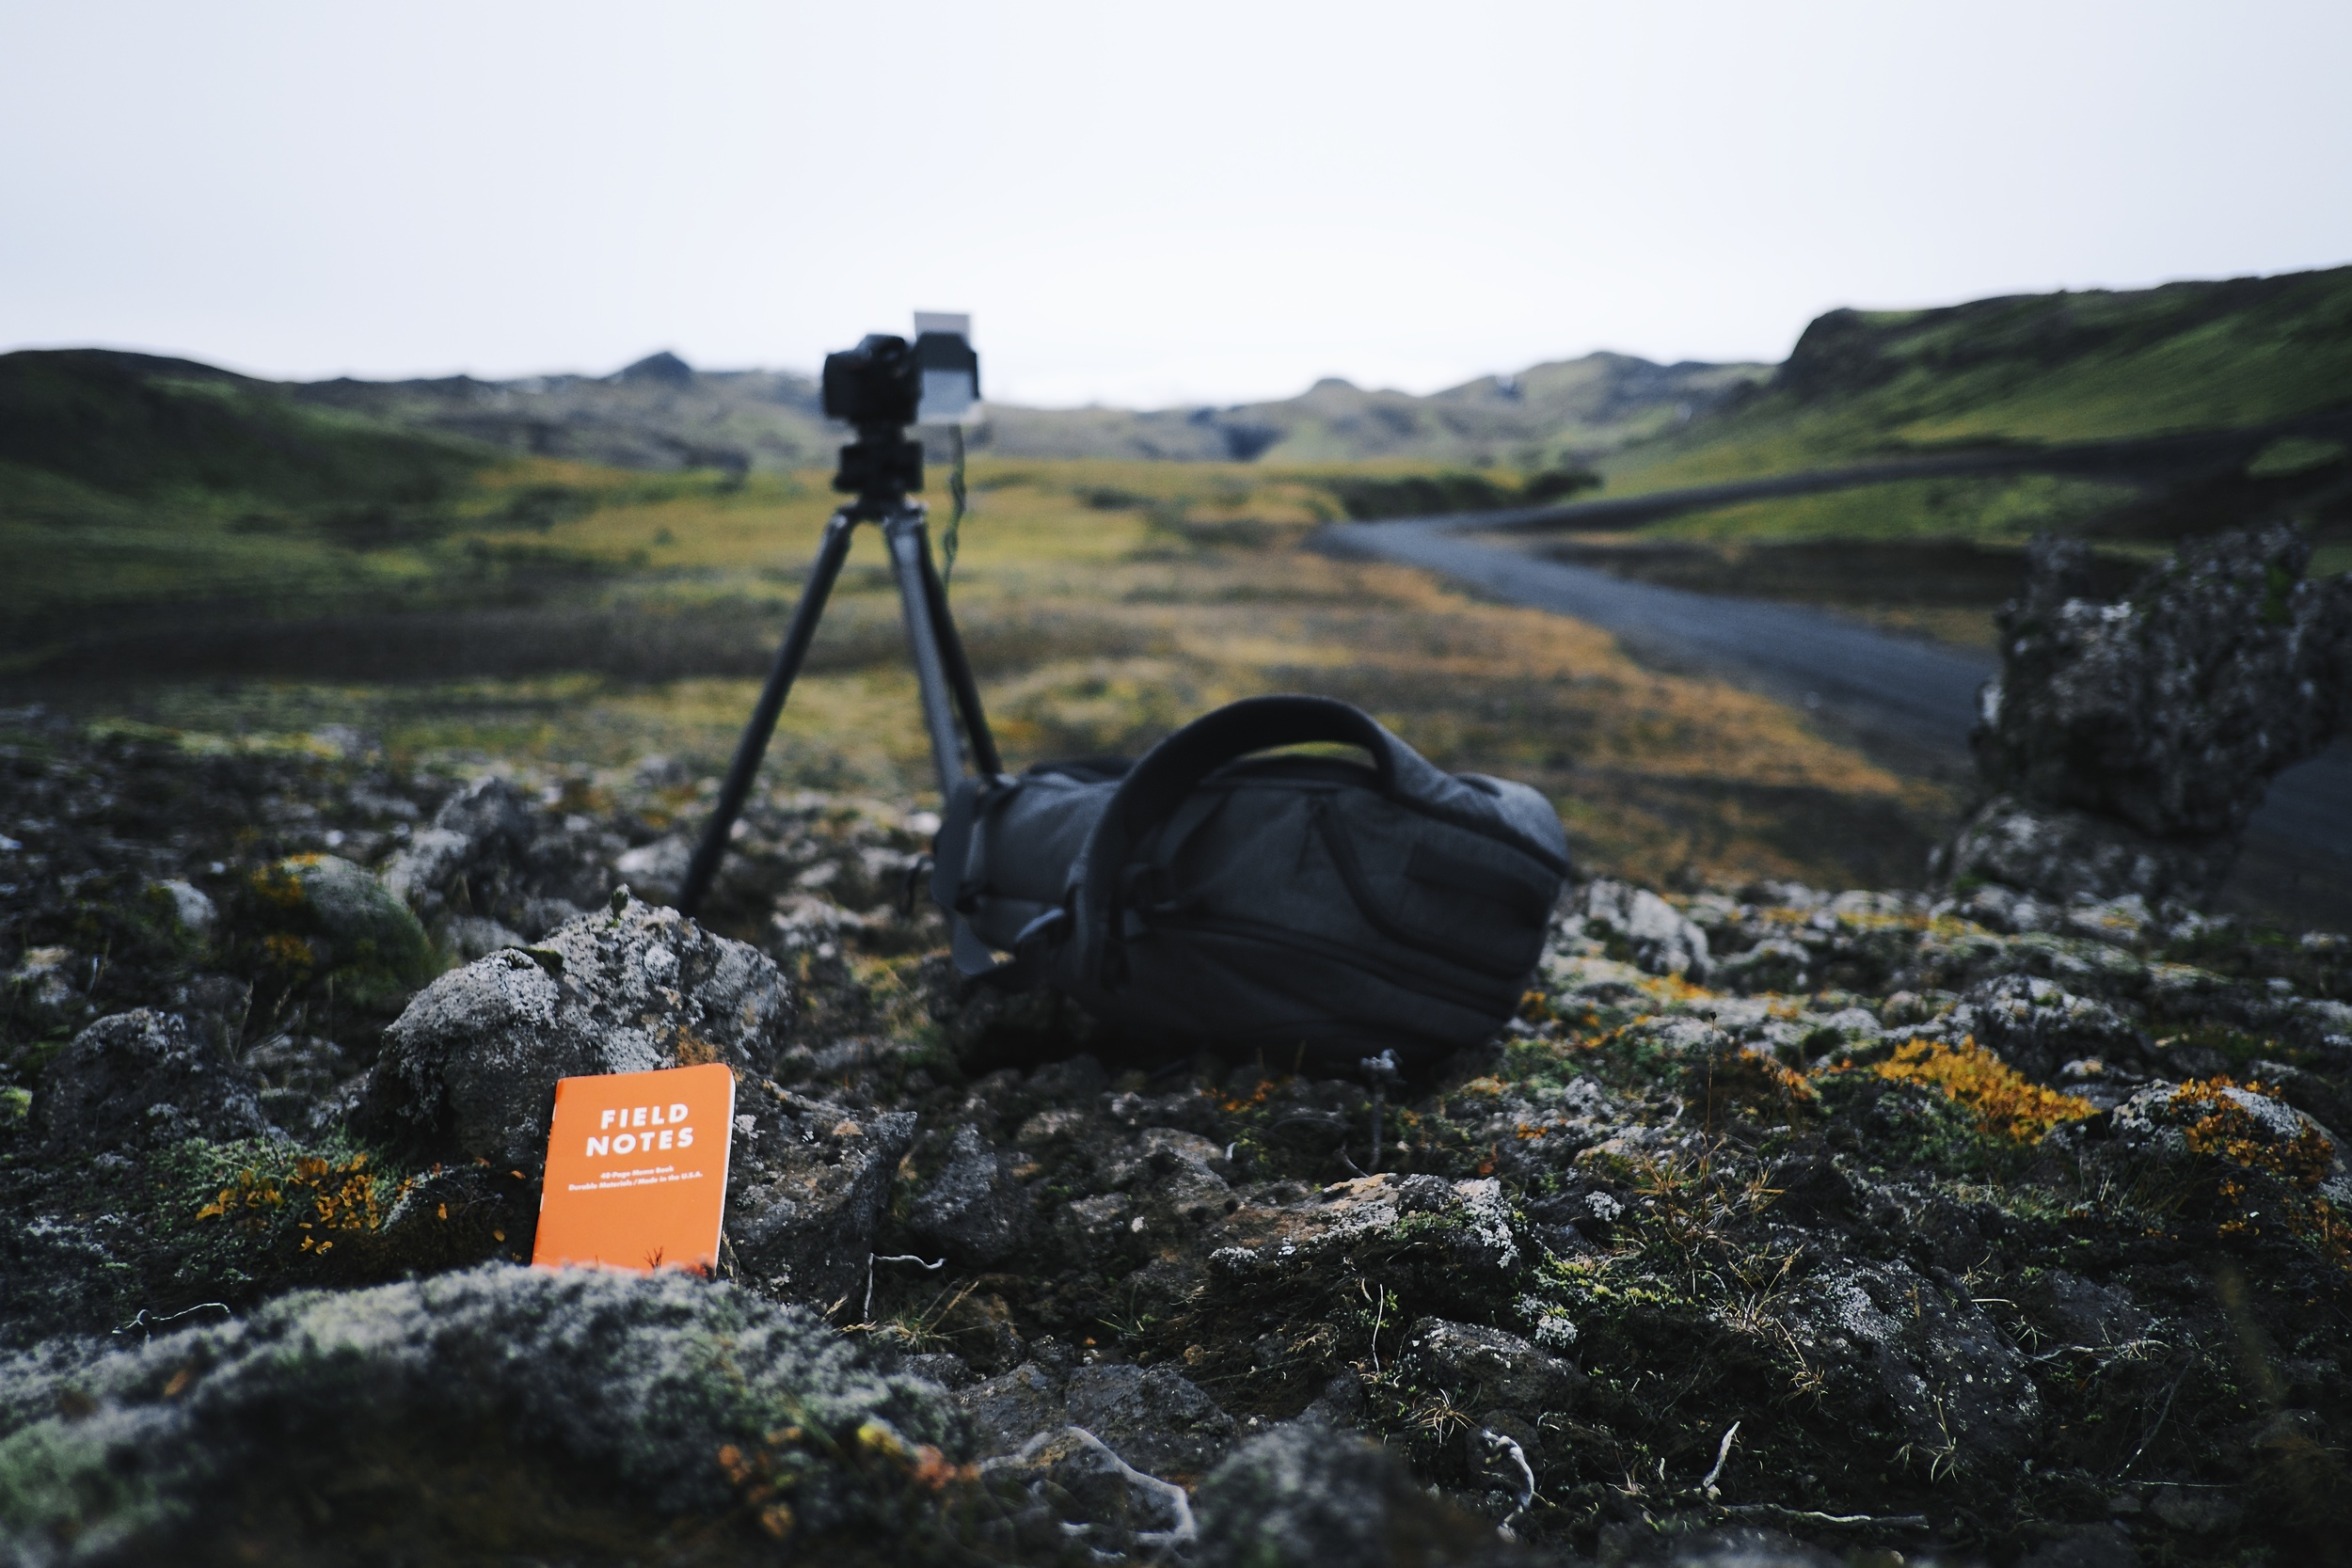 """A little shout out to two items that performed extremely well in harsh conditions. Big thanks.   Field Notes """"EXPEDITION"""" EDITION   Incase Camera Backpack   Fuji: f2 @ 18mm, 1/4000, -.67EV, ISO800"""